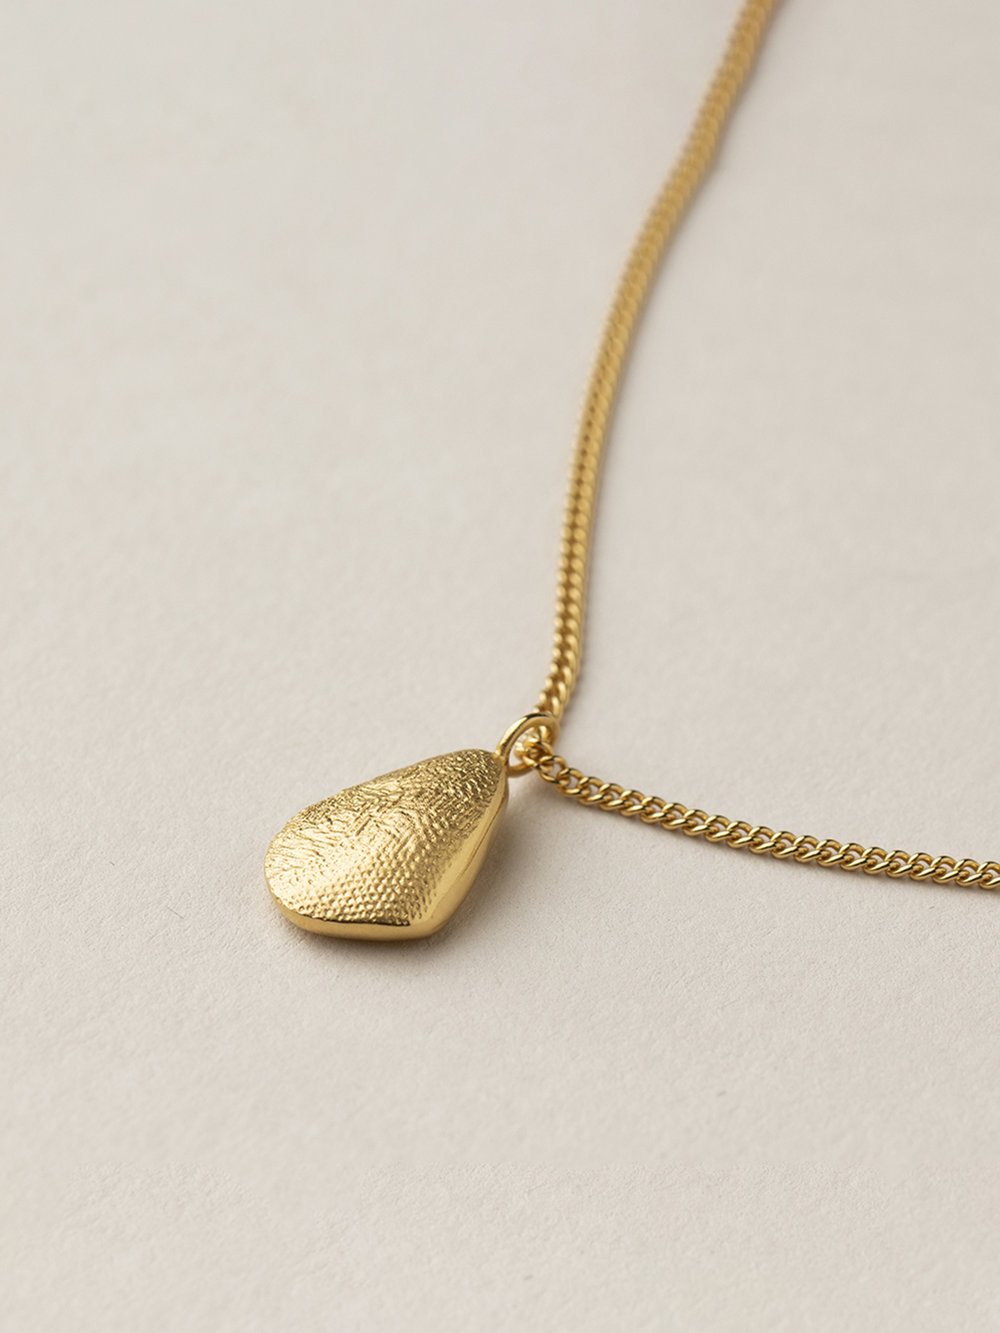 Tropfenkette Amia in goldplatiertem Silber  Amia drop necklace in goldplated silver